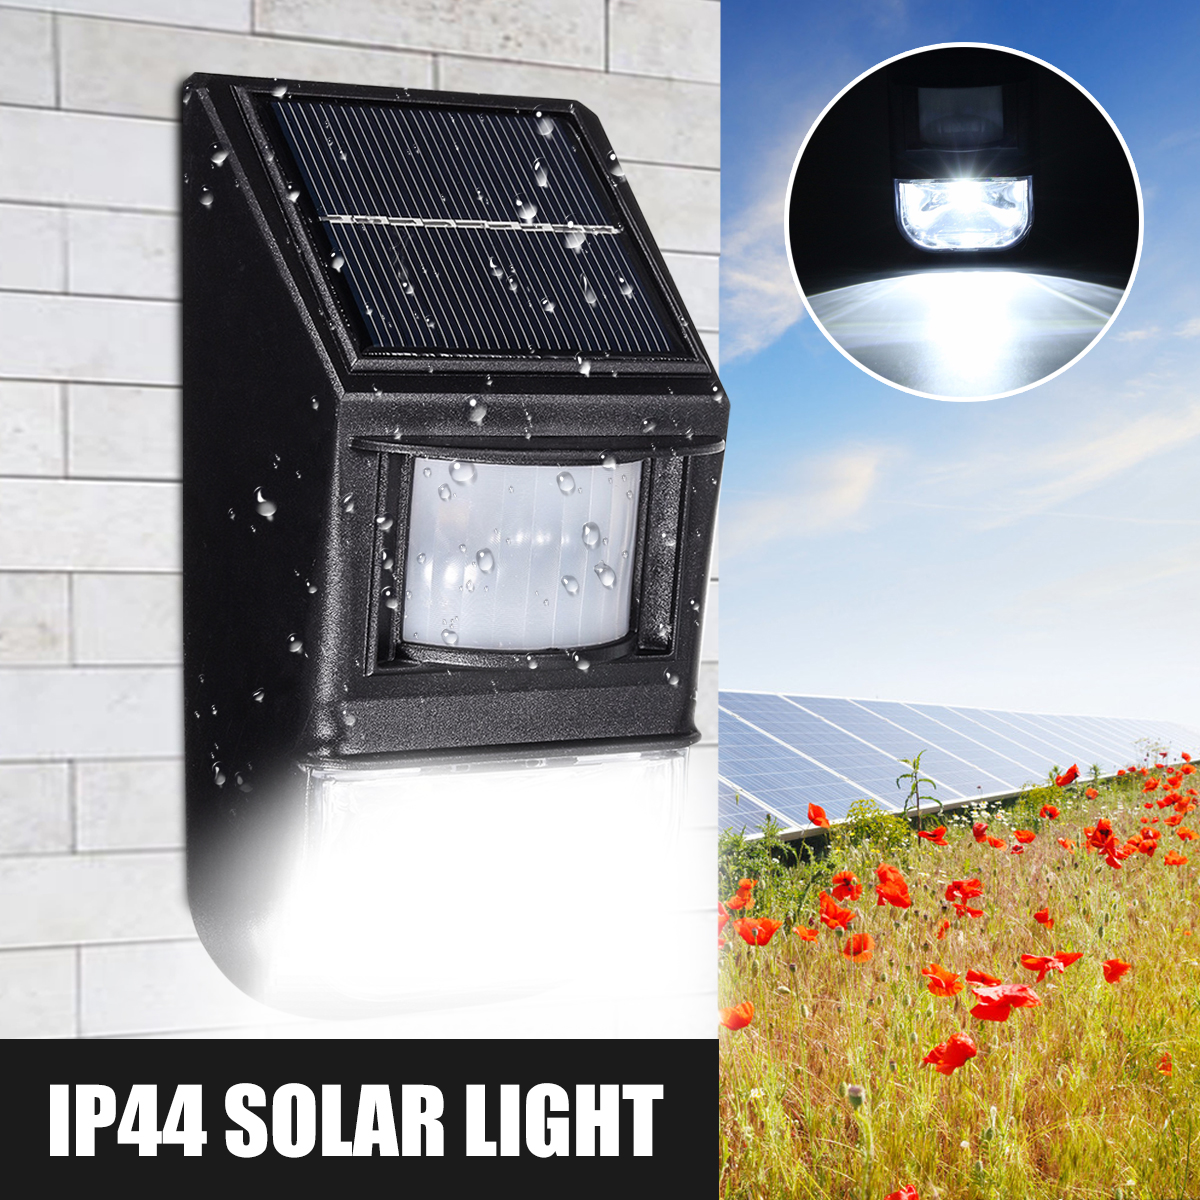 50 LED Ul tra Bright Solar Lights Garden Outdoor PIR Motion Sensor Easy Install Waterproof Security Lamp IP44 for Front Door, Back Yard, Driveway, Garage